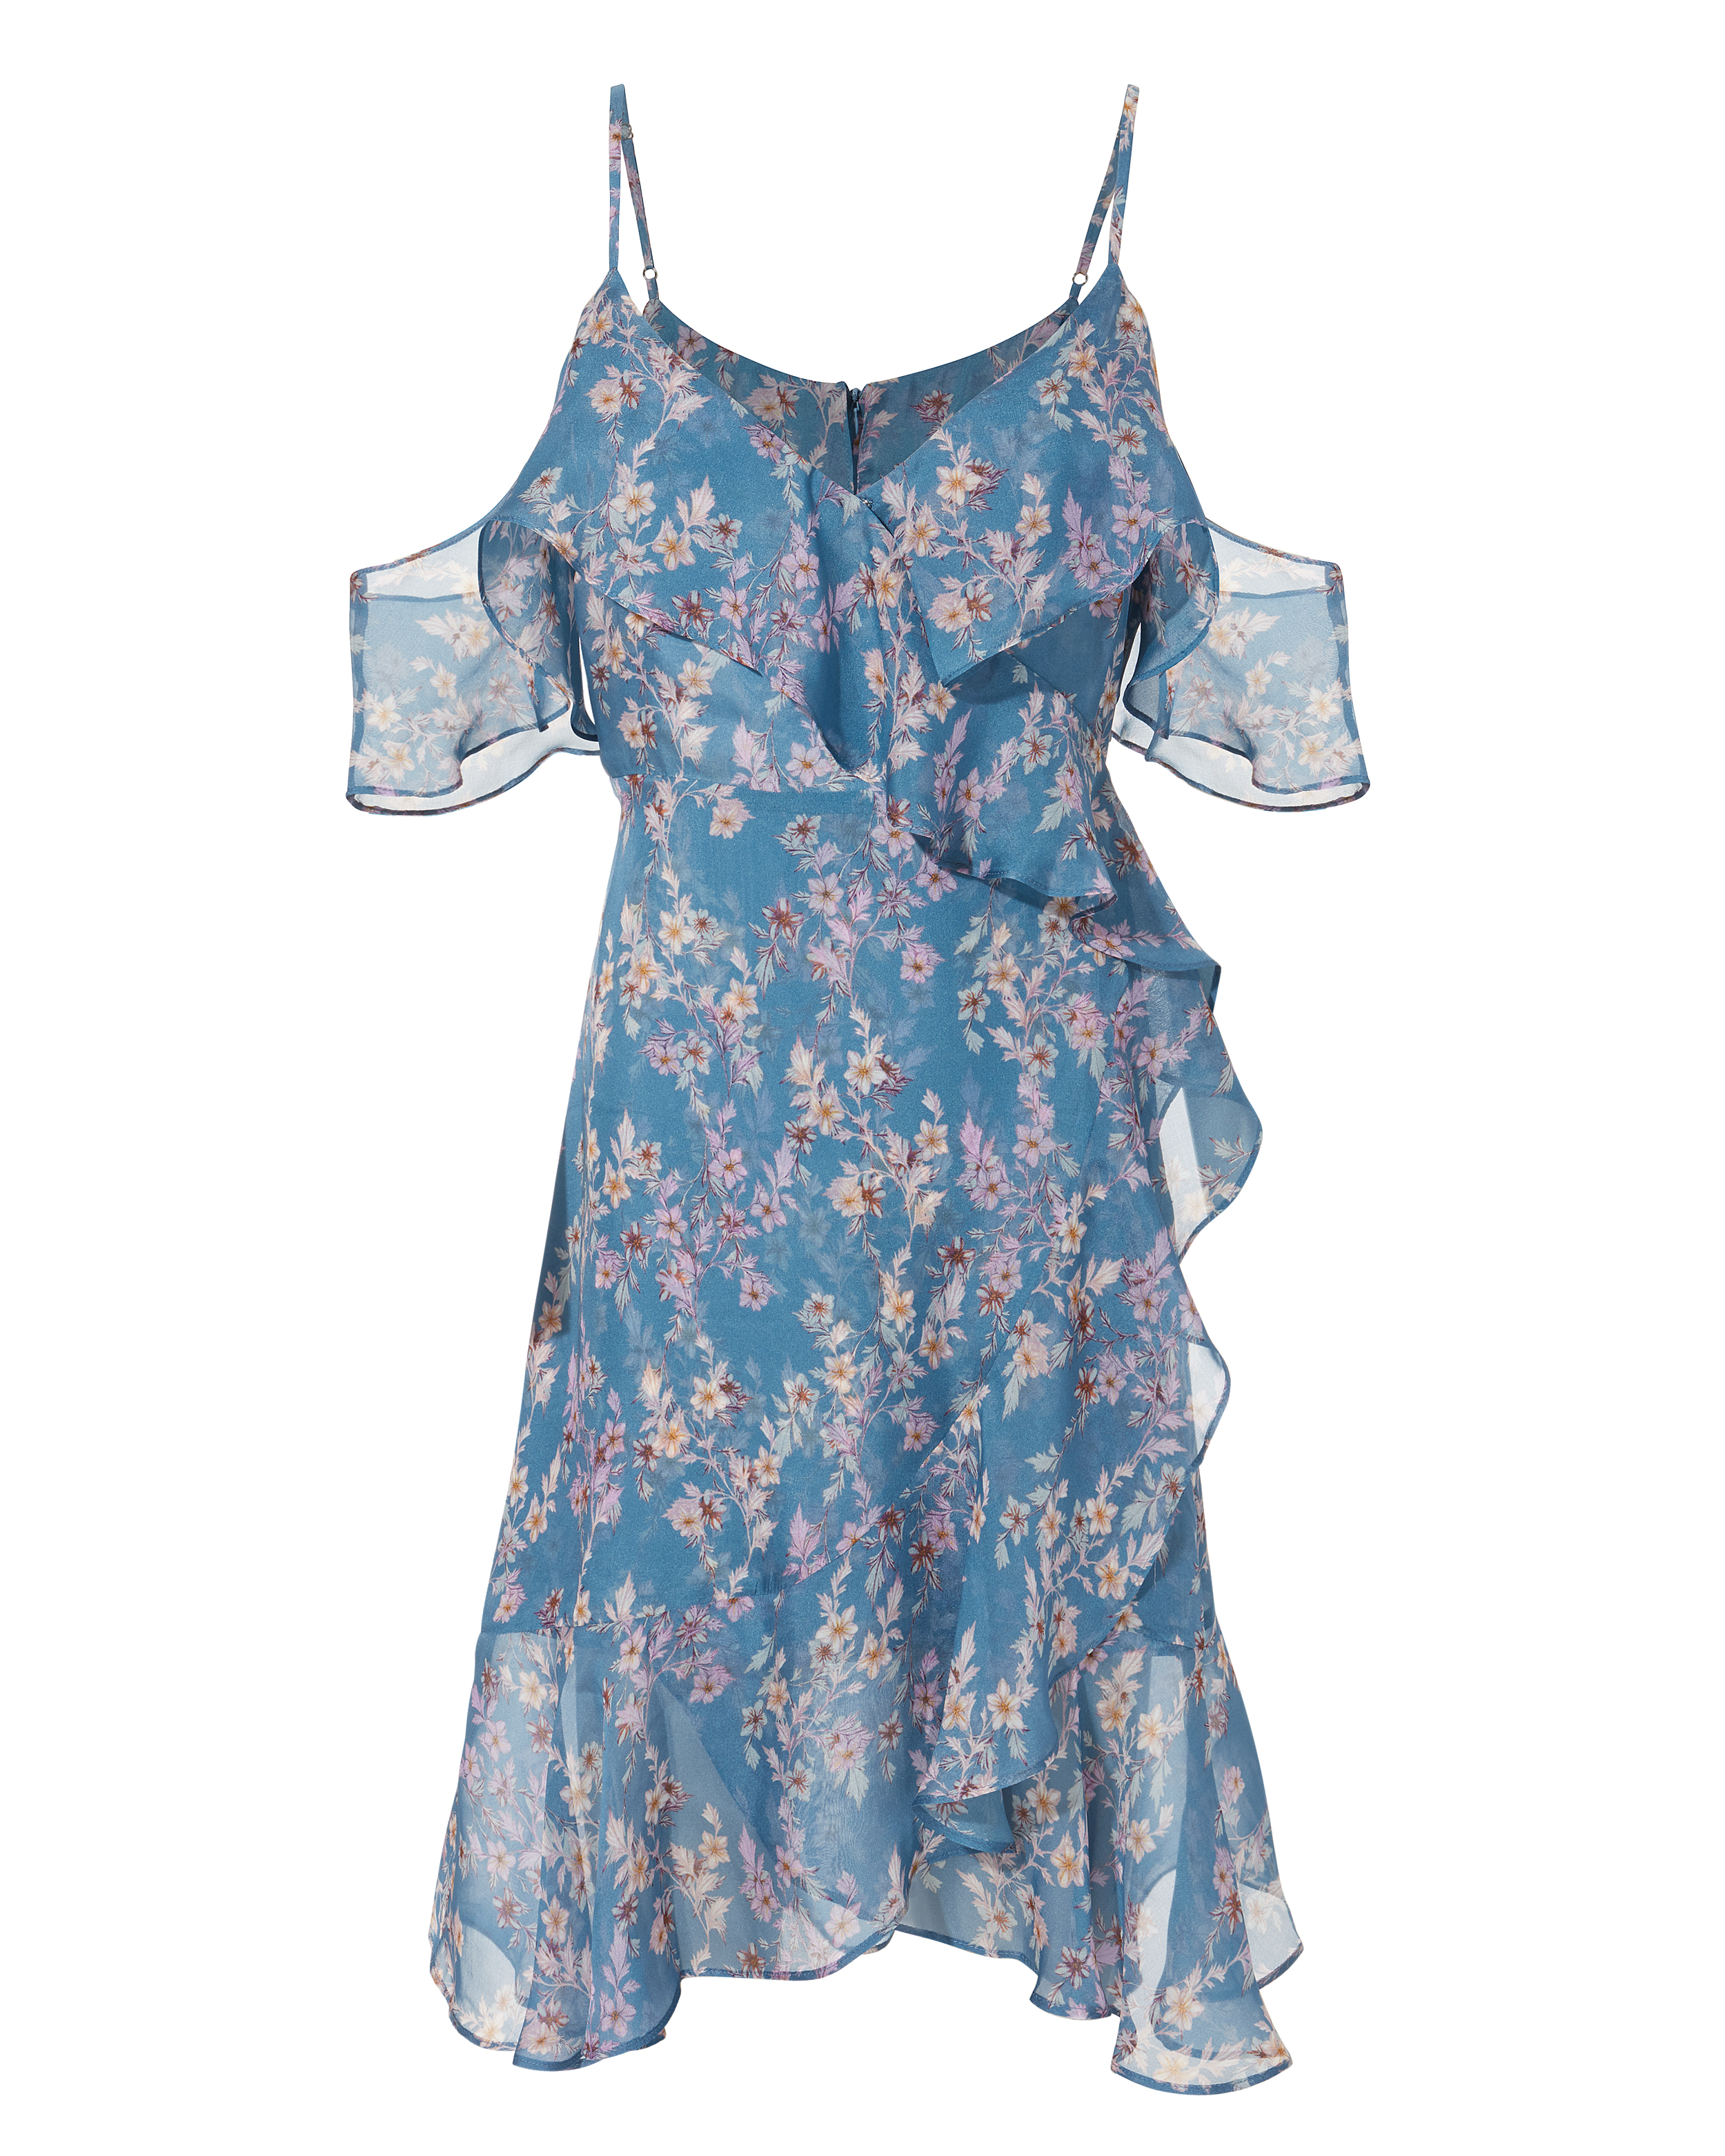 Marissa Blue Vine Ruffled Dress by Intermix